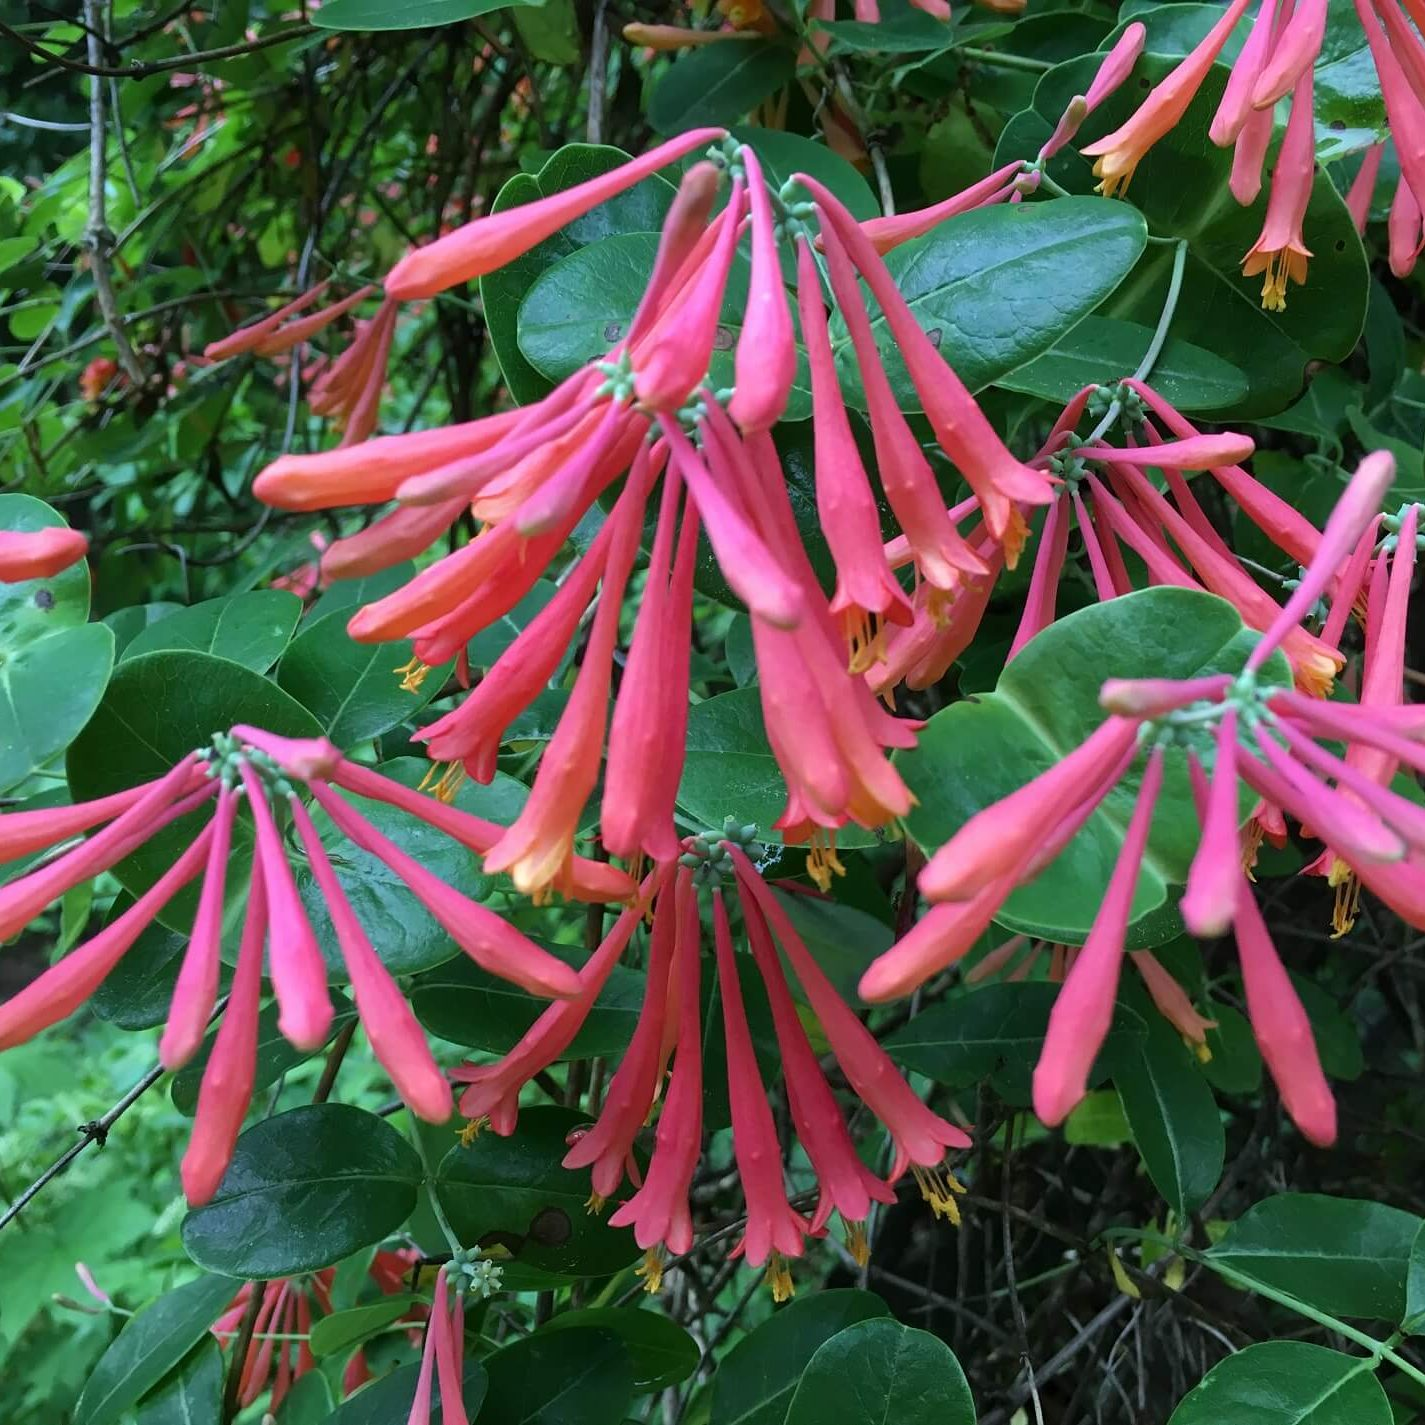 Redbud Native Plant Nursery Coral honeysuckle